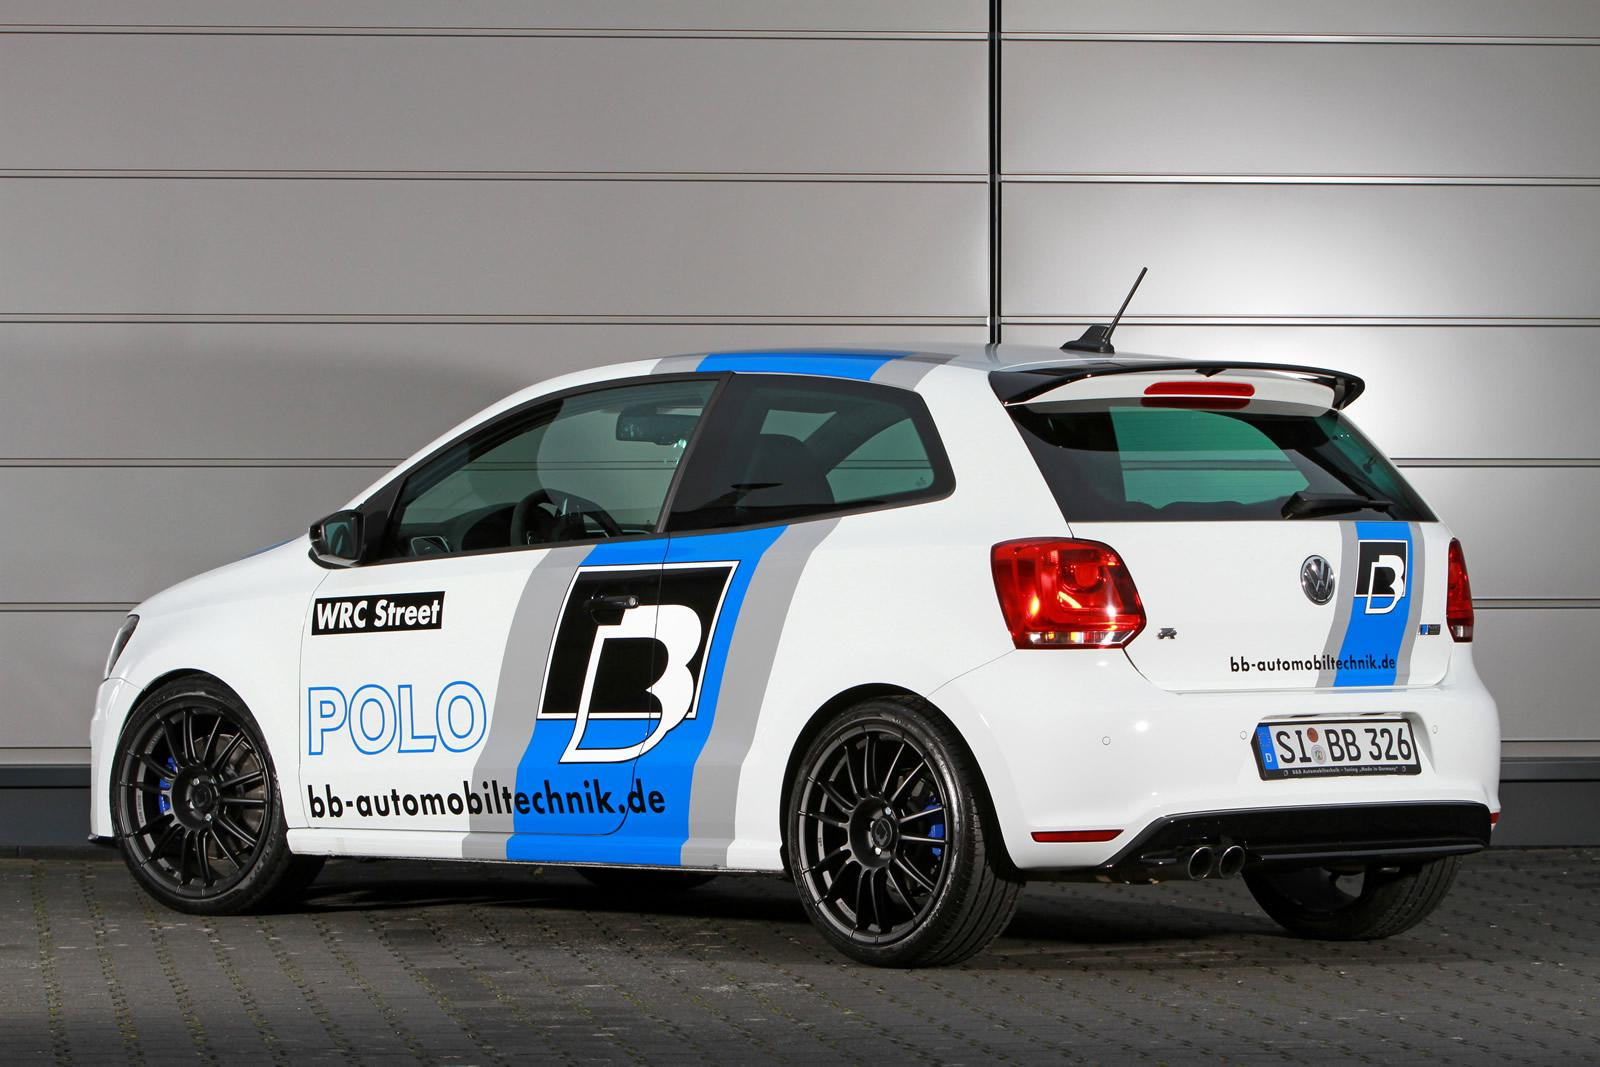 http://s1.cdn.autoevolution.com/images/news/gallery/volkswagen-polo-r-wrc-tuned-to-360-hp-photo-gallery_8.jpg?1385480223